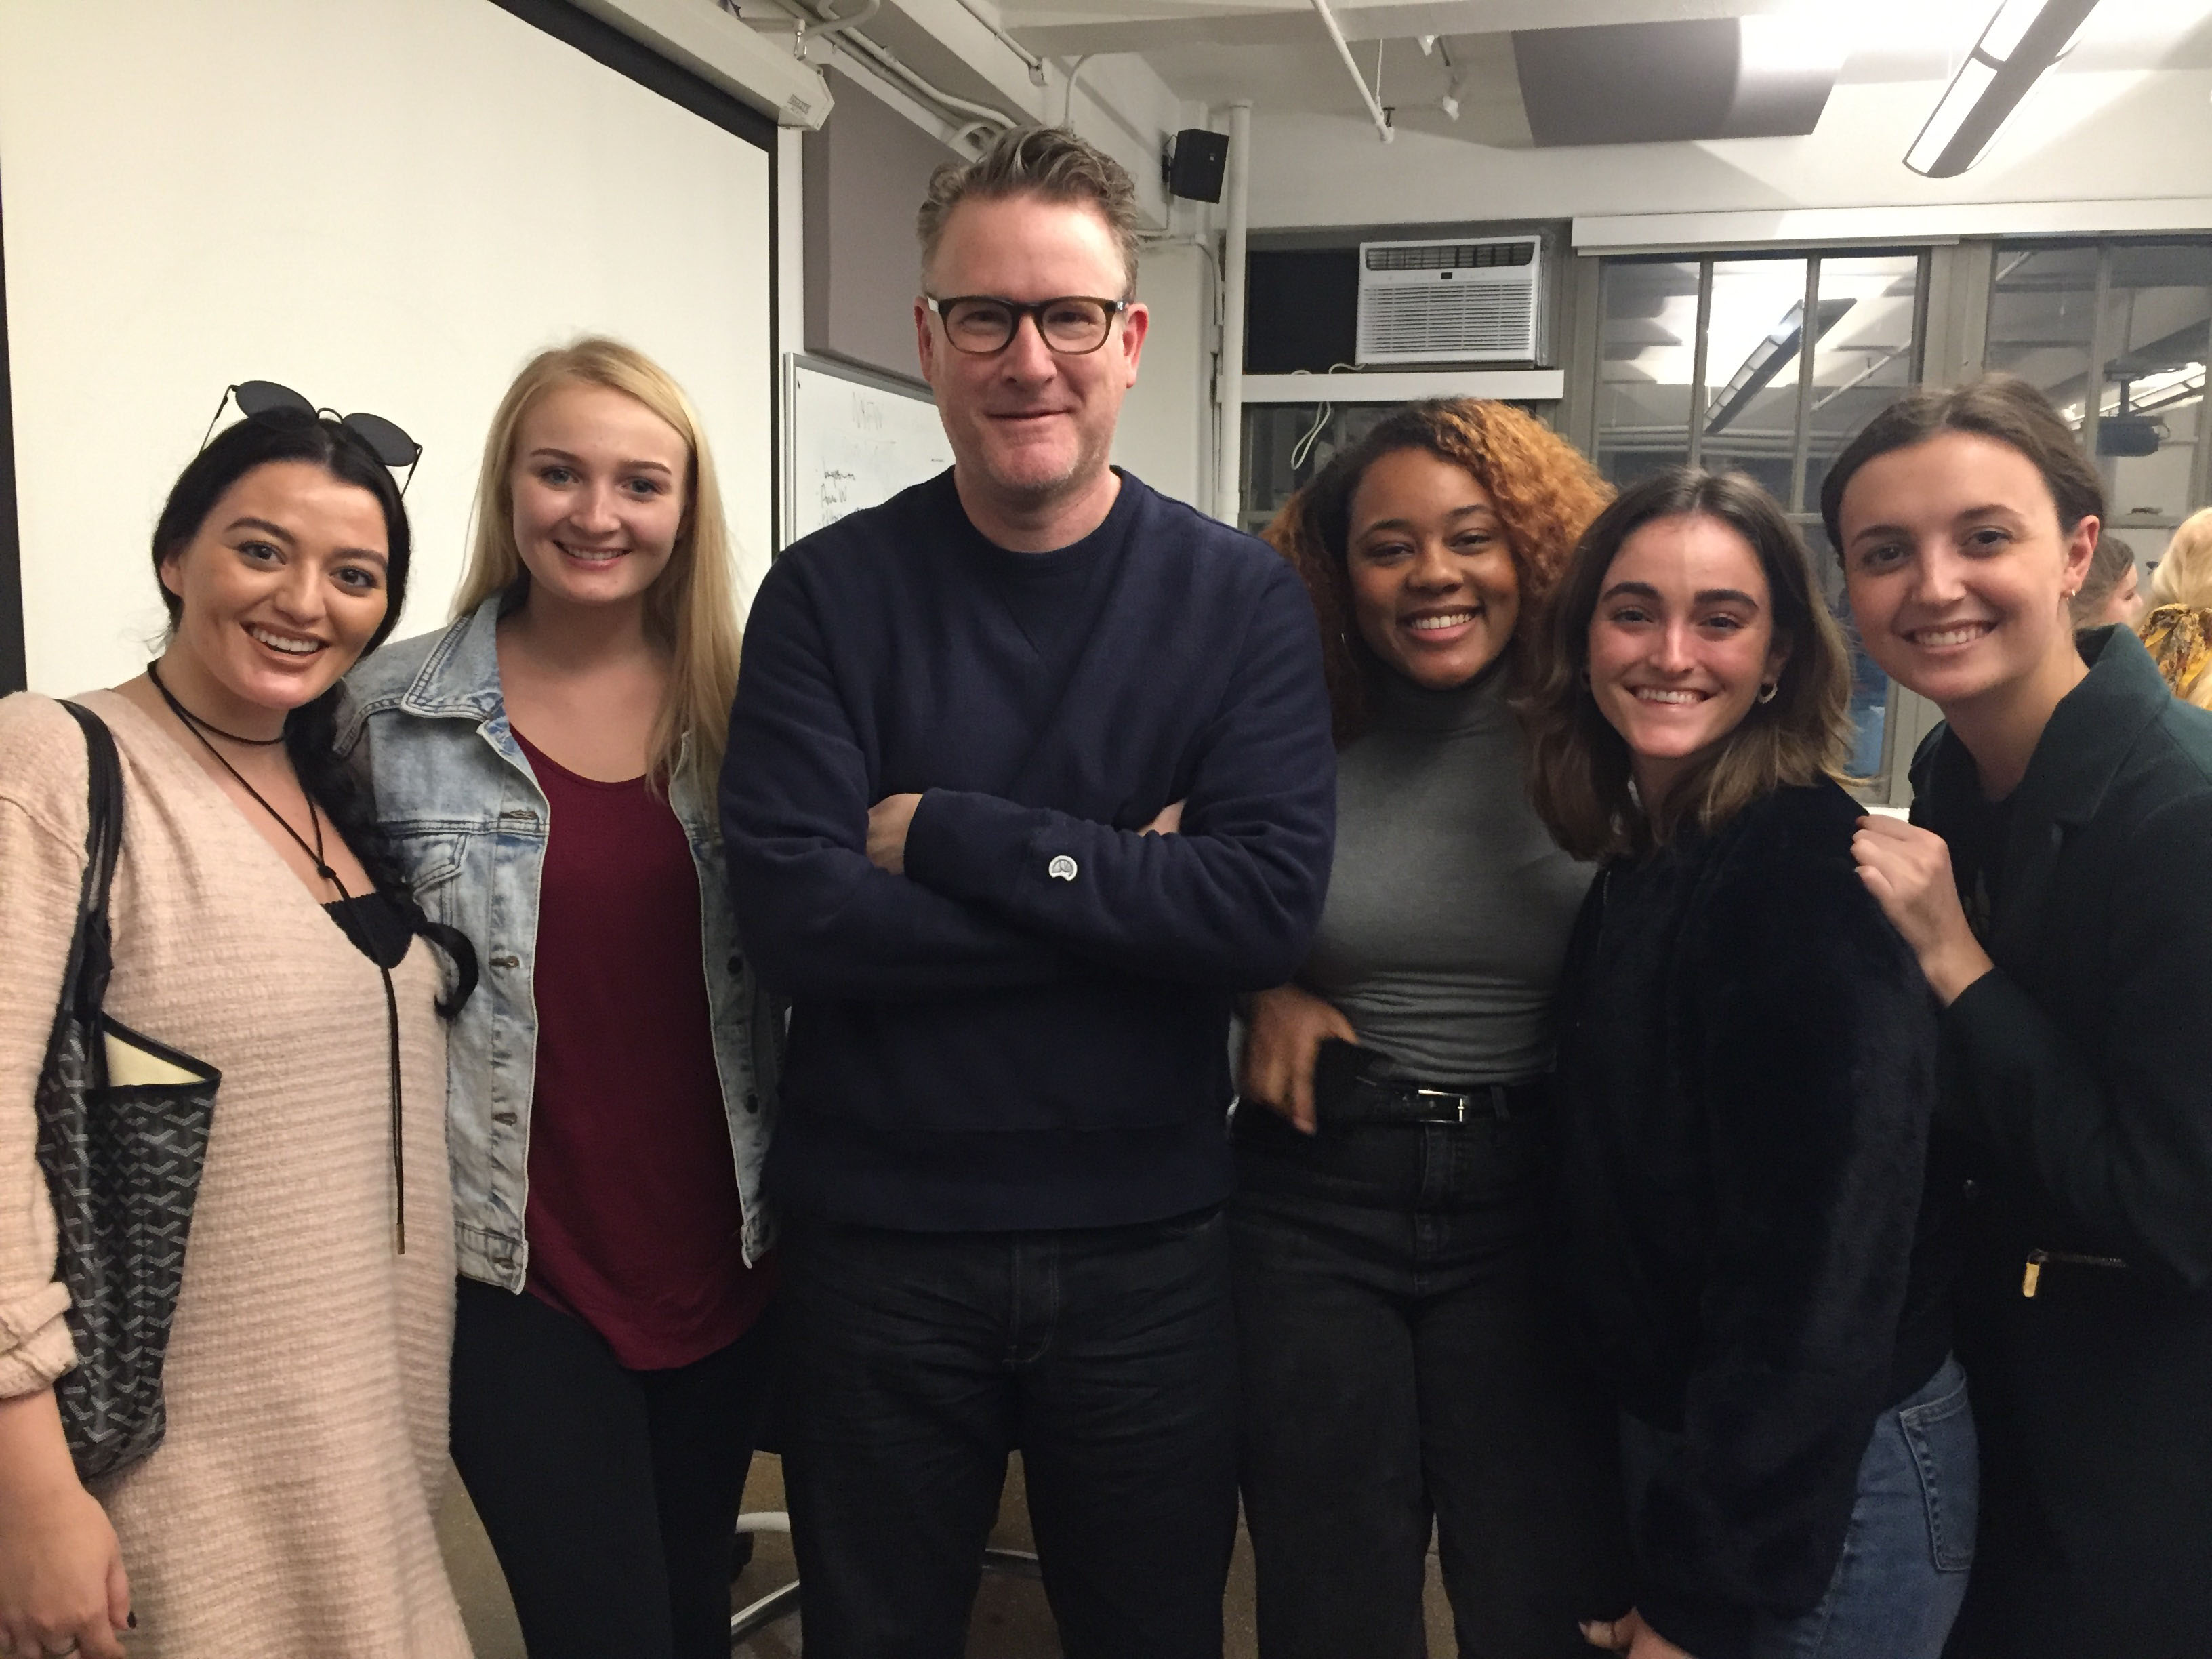 Students posing with guest lecturer